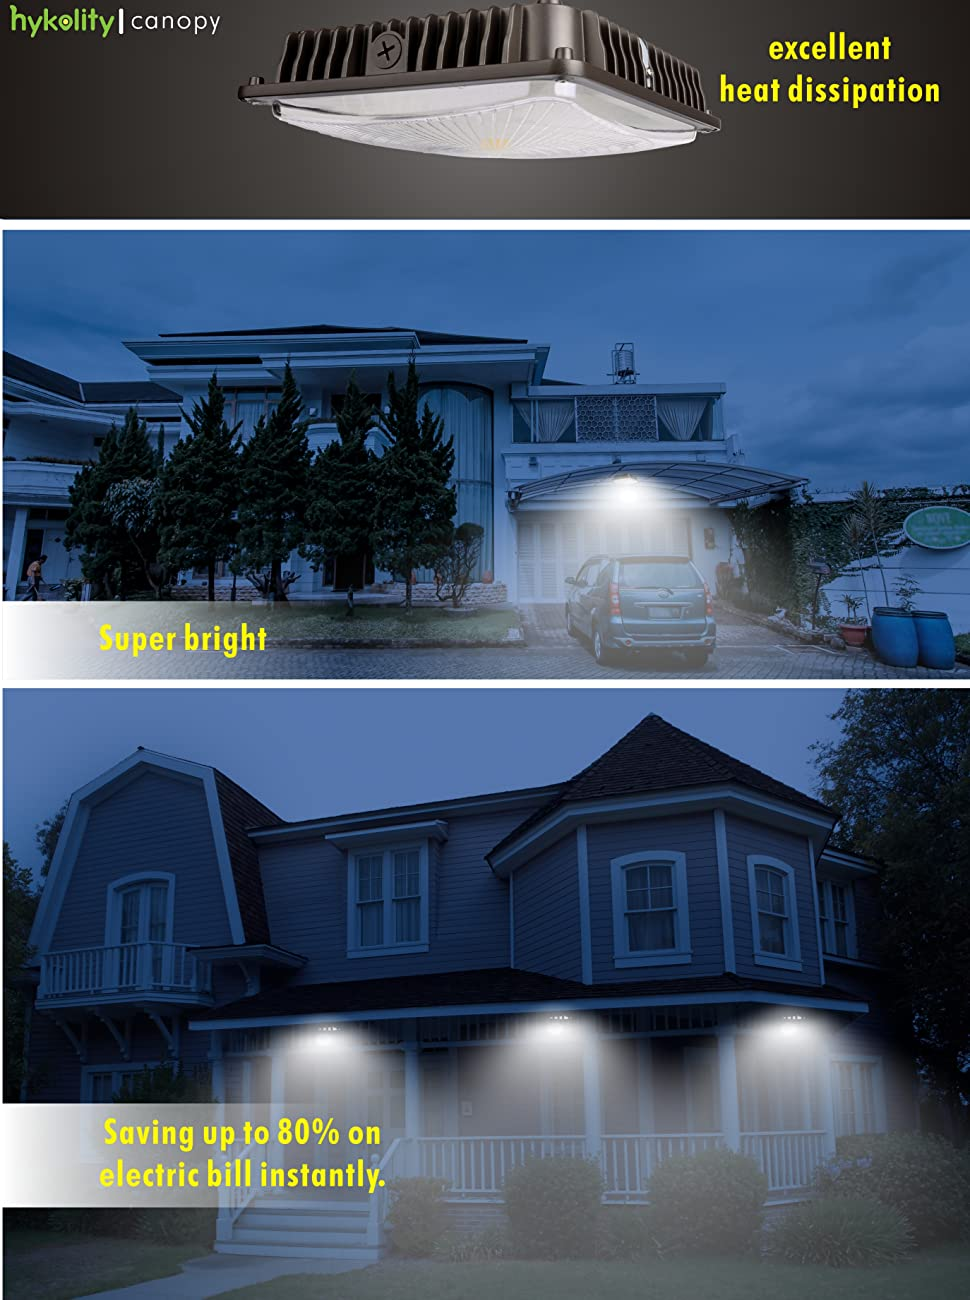 Hykolity 70w led canopy light commerical grade weatherproof to illuminate your carport quickly and easily with hykolity canopy light fixture led 70w canopy lights ceiling mount area light will provide efficient and arubaitofo Images